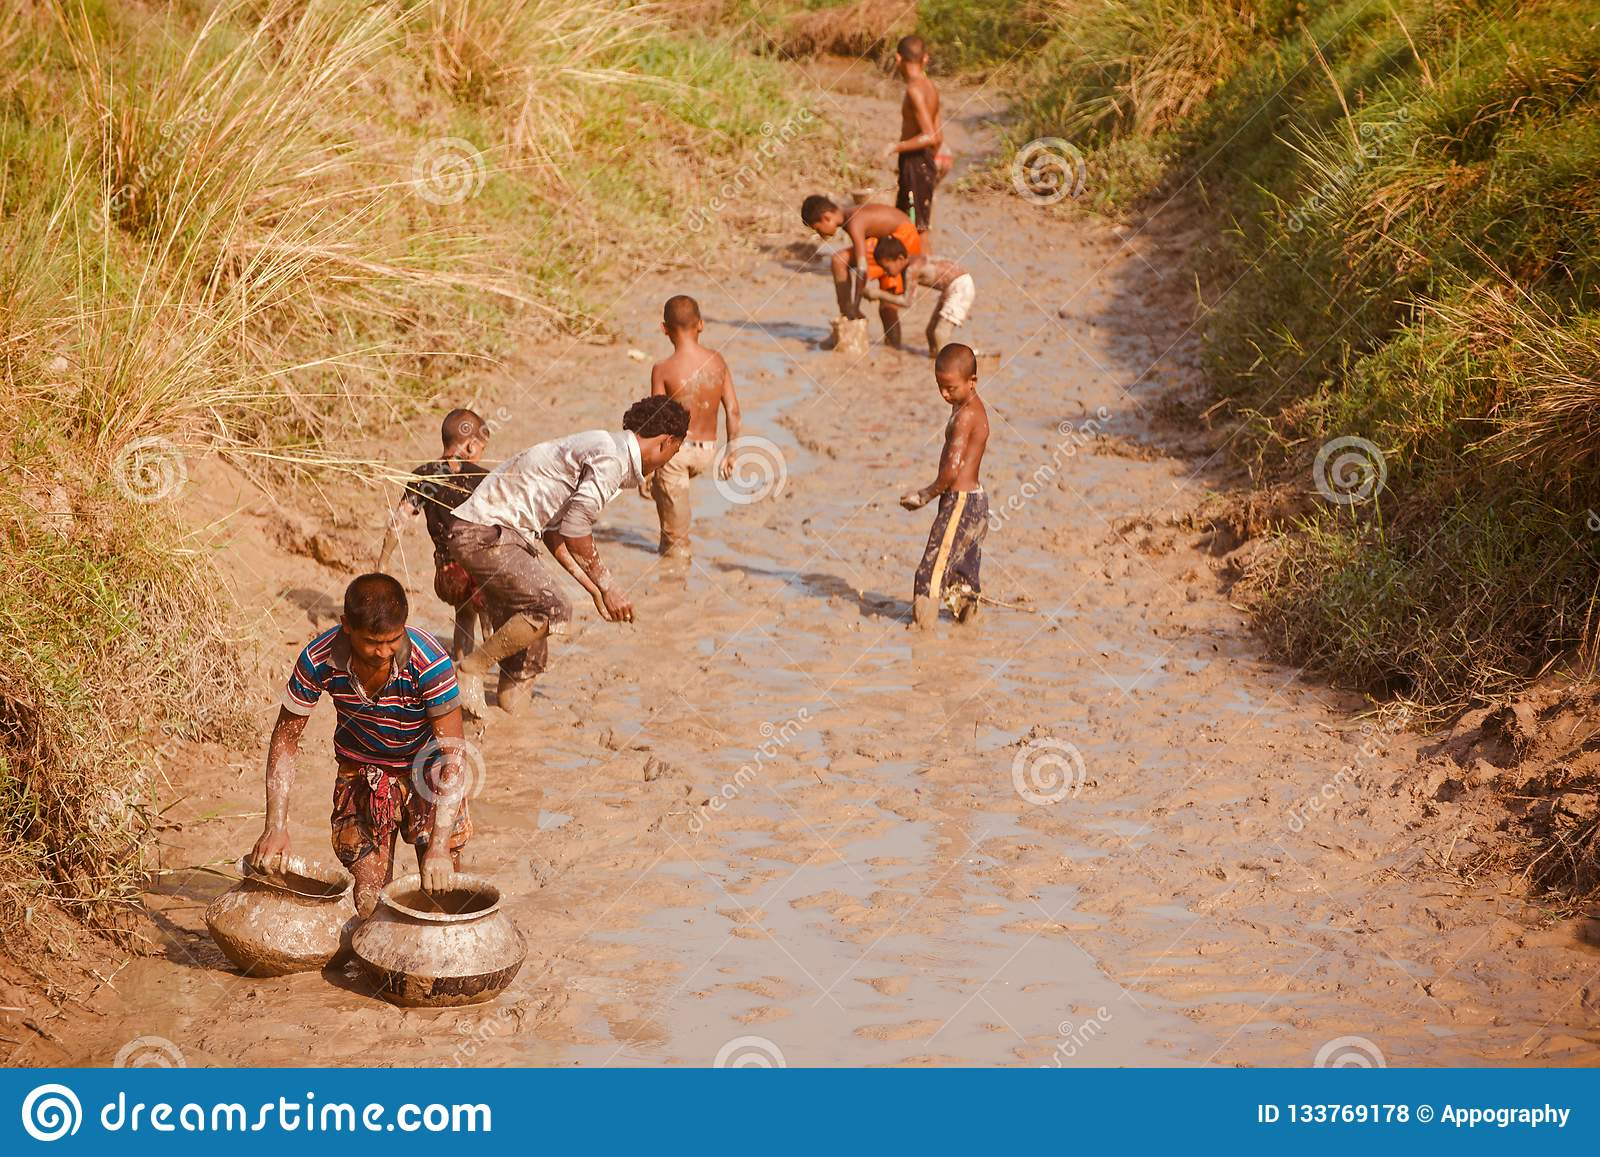 Poor people fishing around a muddy area